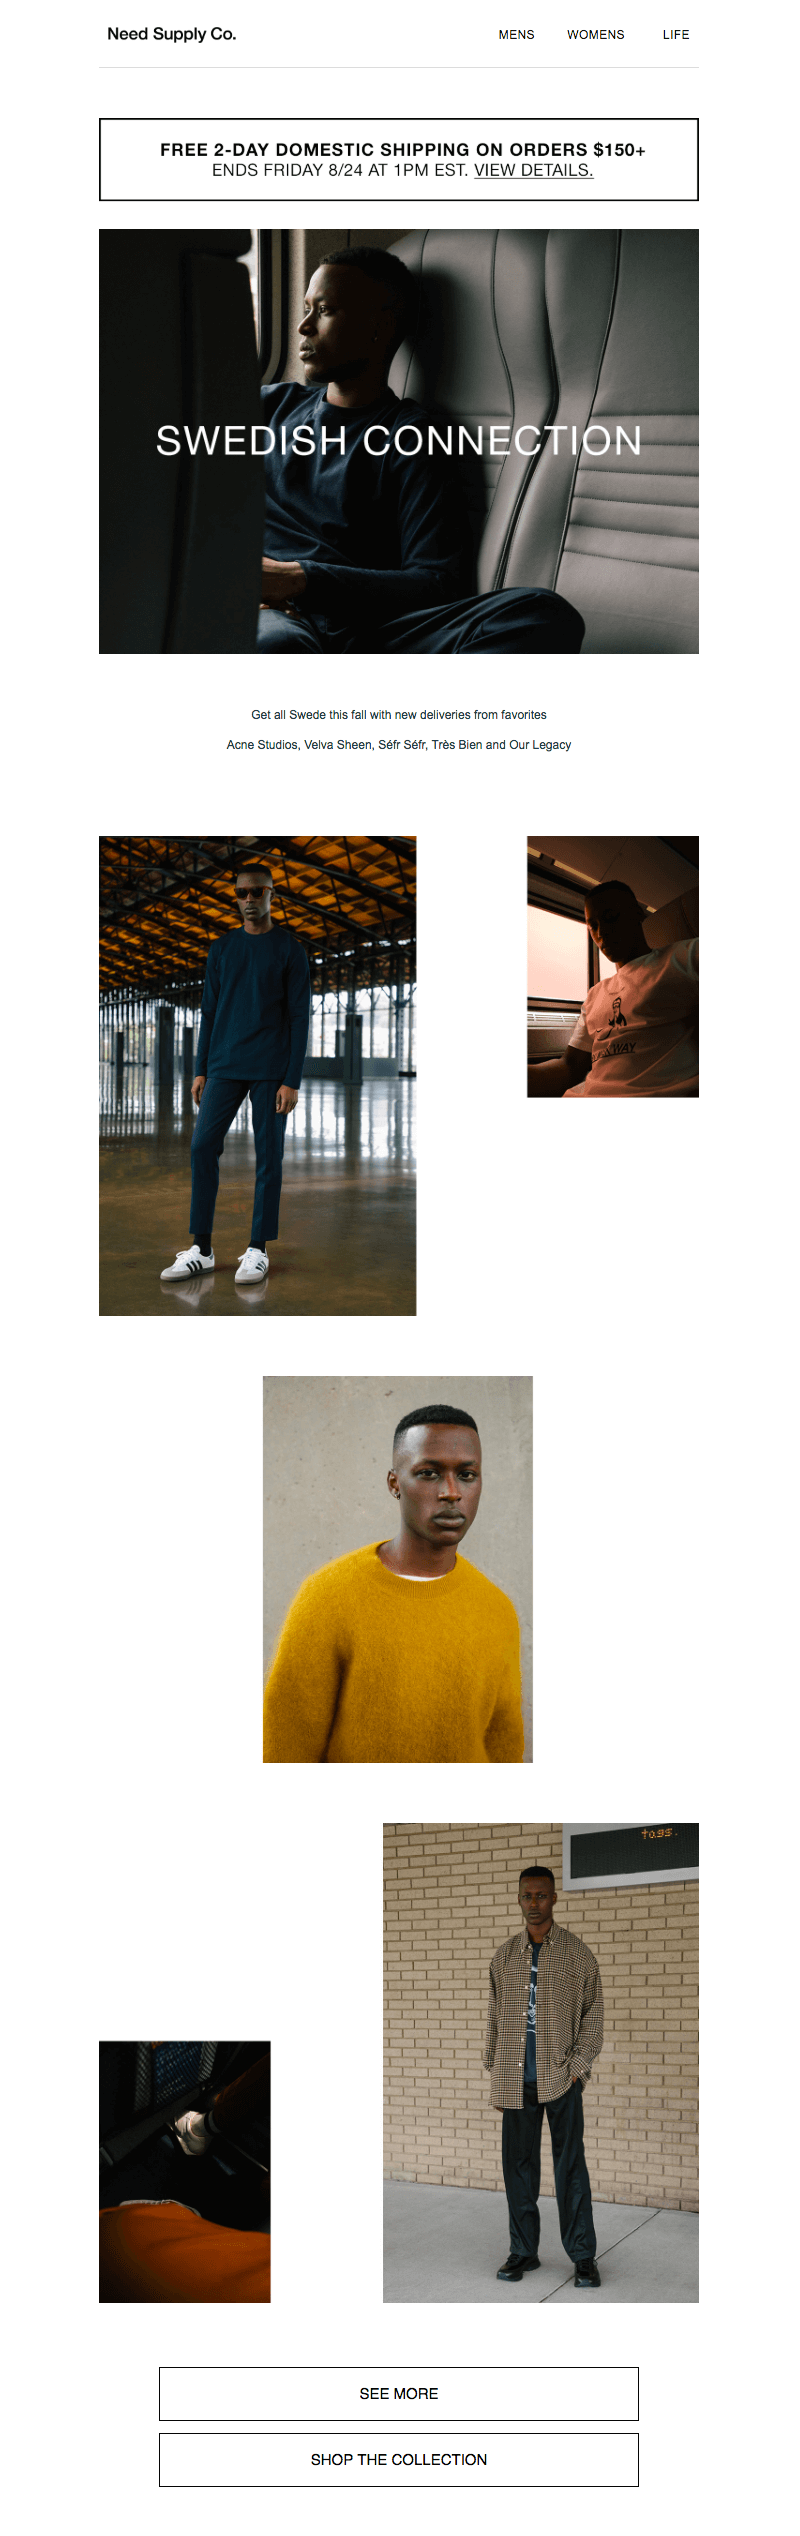 Need Supply Co. fall email campaign